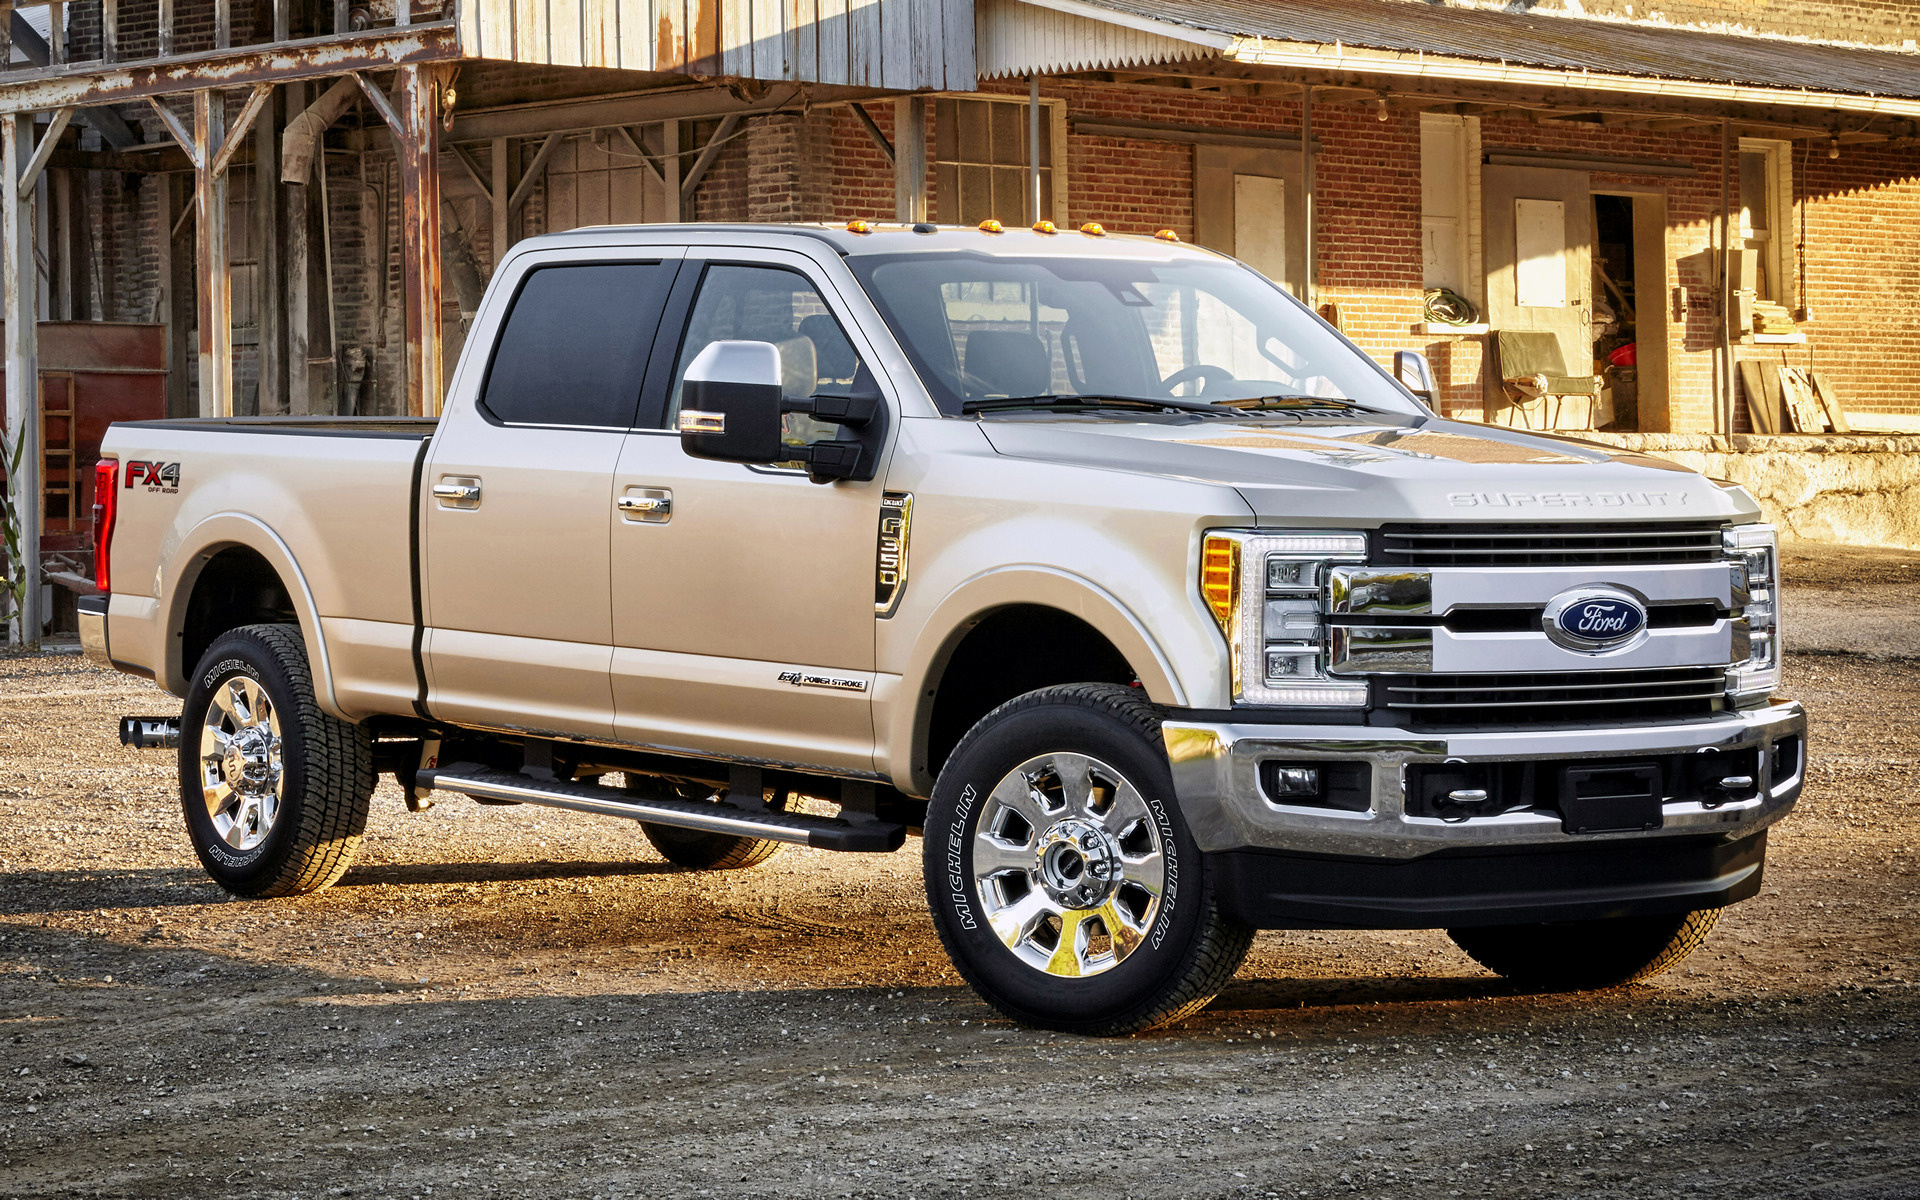 Ford Powerstroke For Sale >> 2017 Ford F-350 King Ranch FX4 Crew Cab - Wallpapers and HD Images | Car Pixel